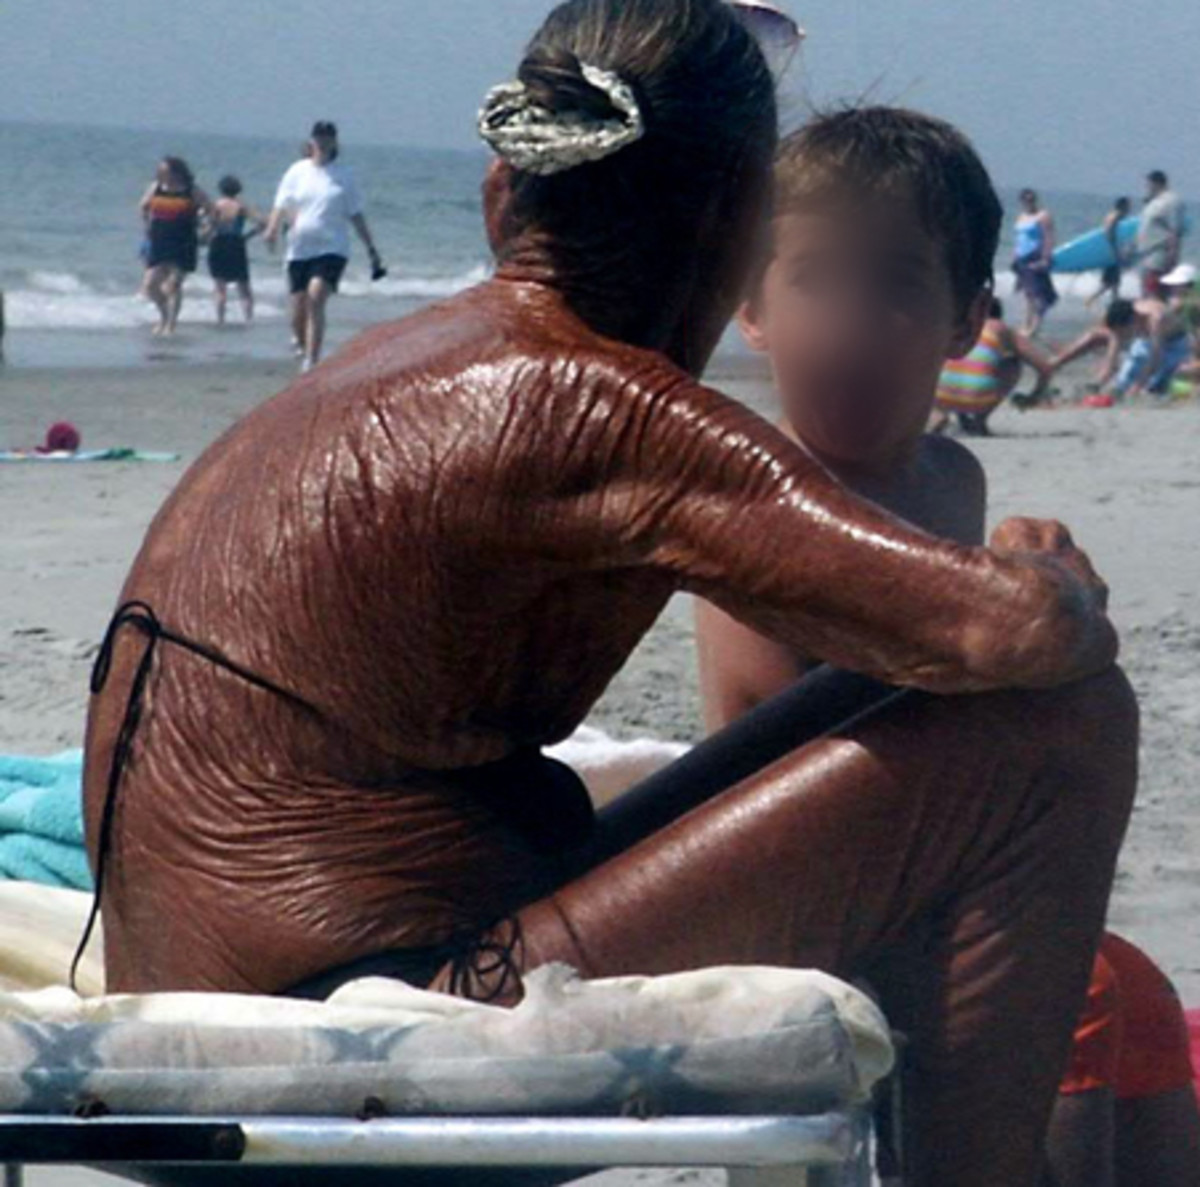 This woman's skin is like pure leather. Wrinkled and burned. It is so aged, she looks at least 80 years old.